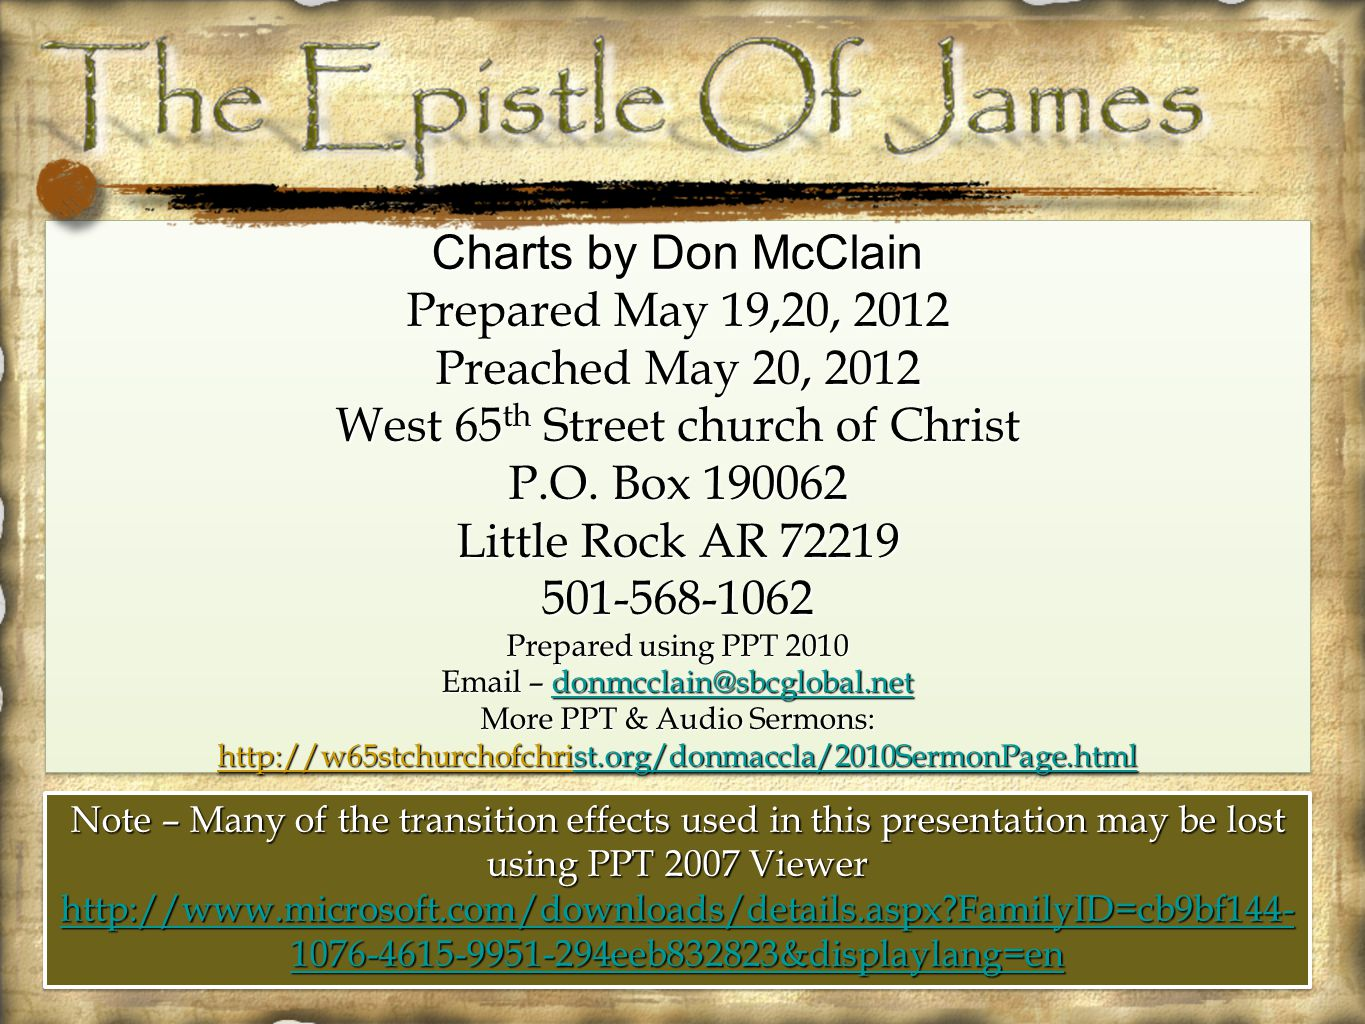 Charts by Don McClain Prepared May 19,20, 2012 Preached May 20, 2012 West 65 th Street church of Christ P.O. Box 190062 Little Rock AR 72219 501-568-1